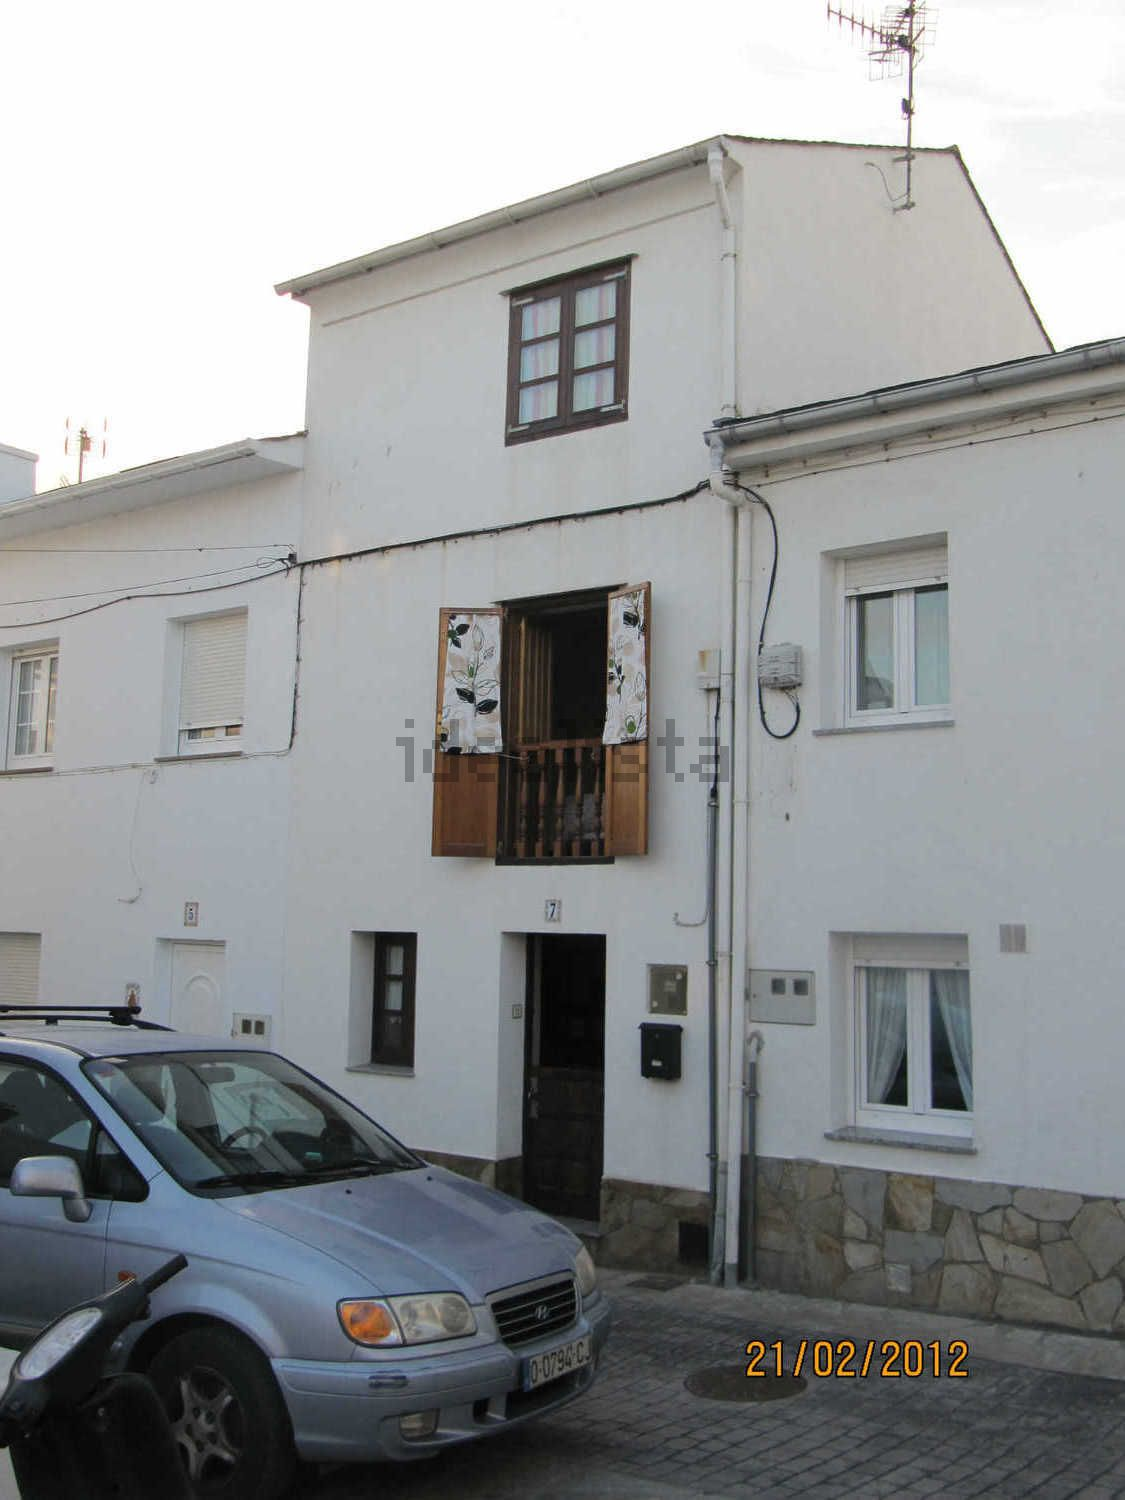 House for sale in Tapia de Casariego